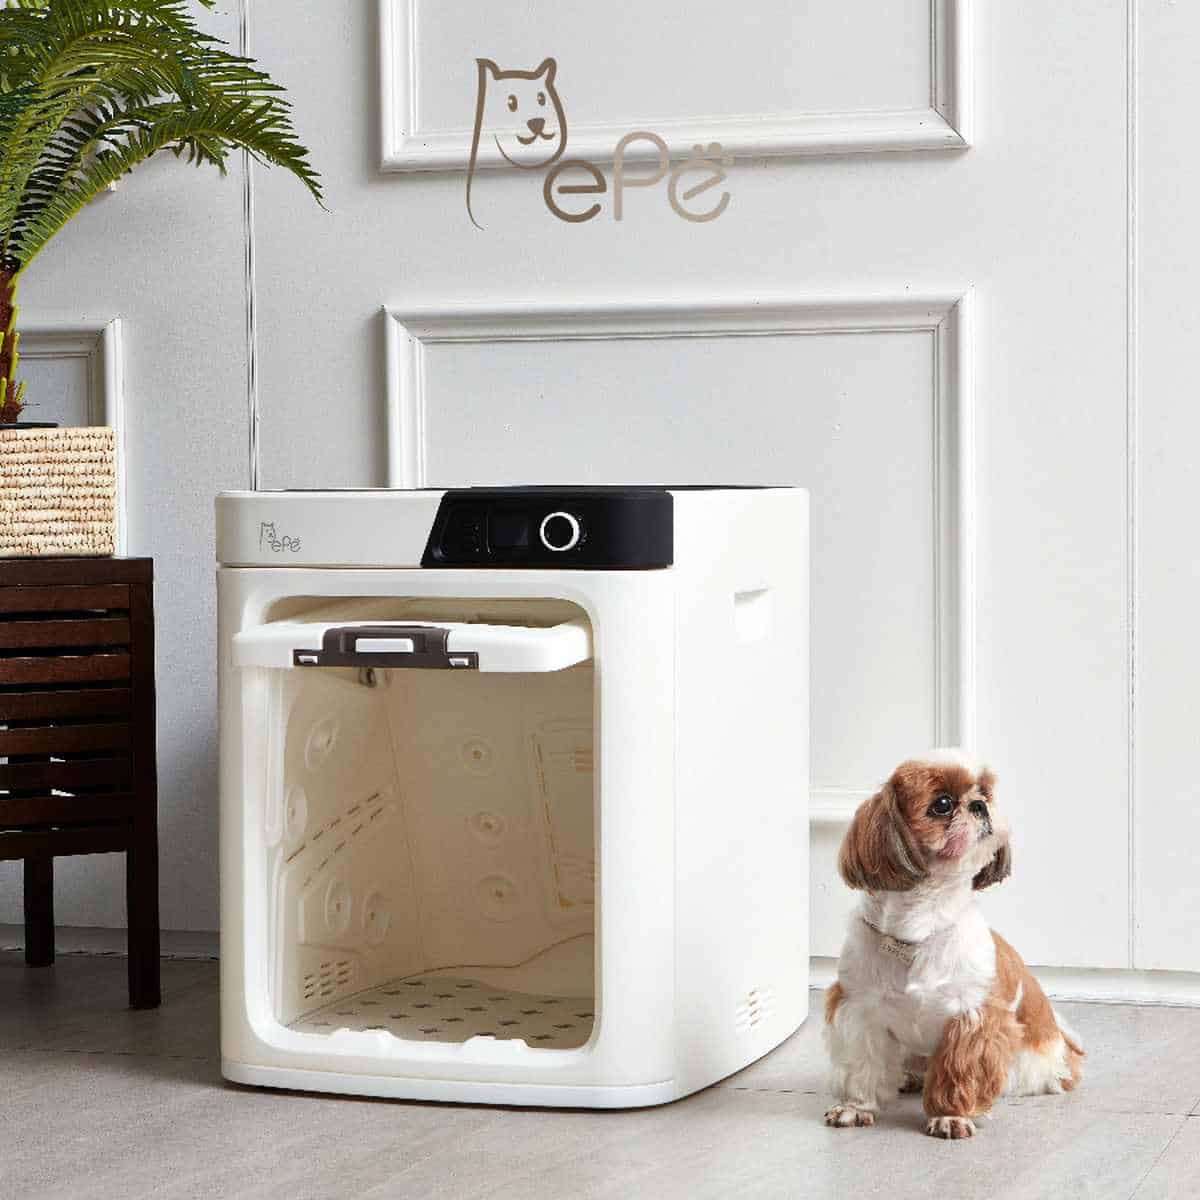 Pepe Pet Dryer | Tech-Forward Pet Accessories To Share With Your Furry Friend